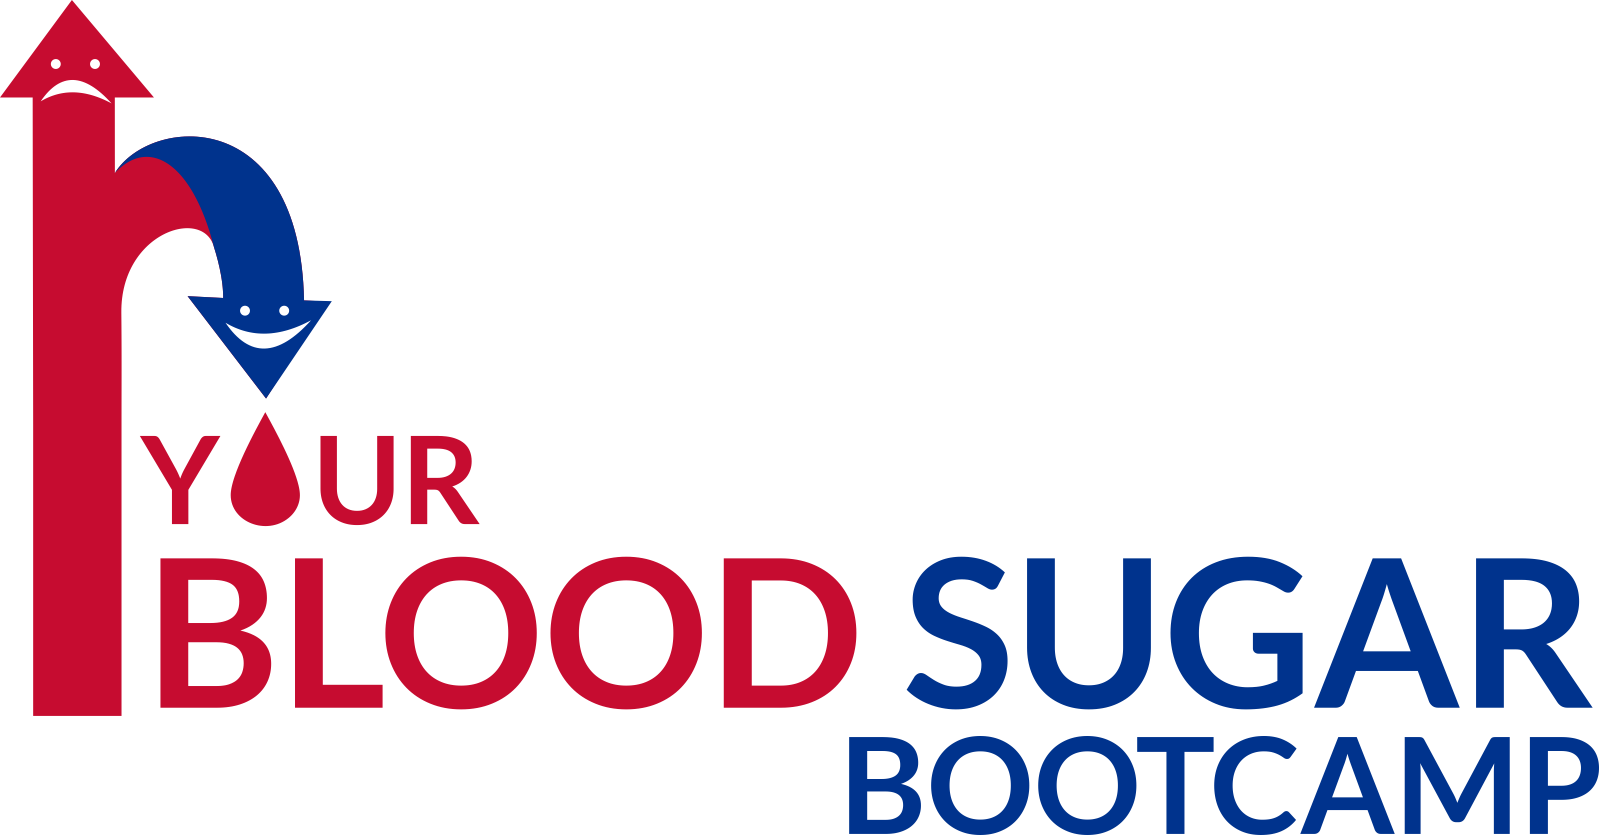 Your Blood Sugar Boot Camp